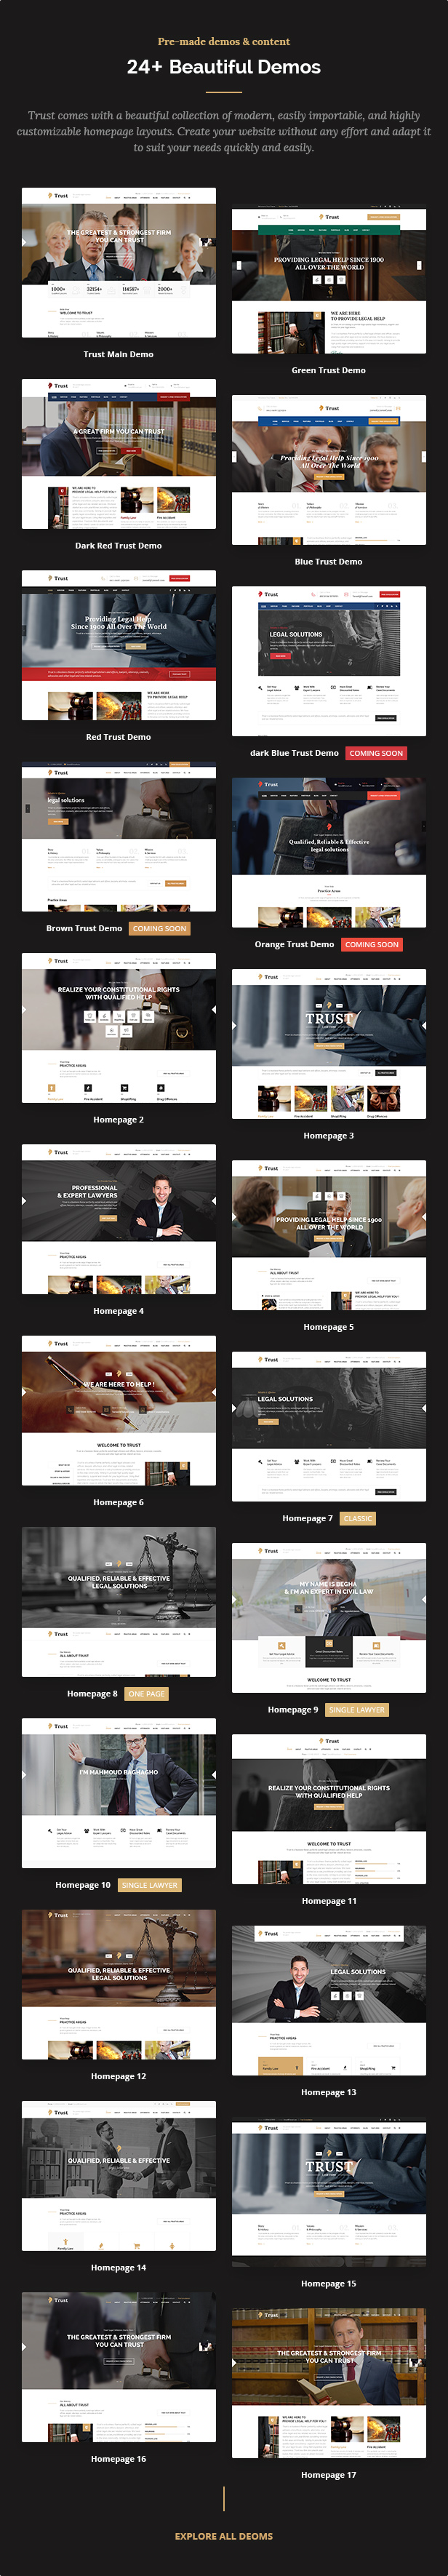 Trust Business - Lawyer and Attorney WordPress Theme - 5